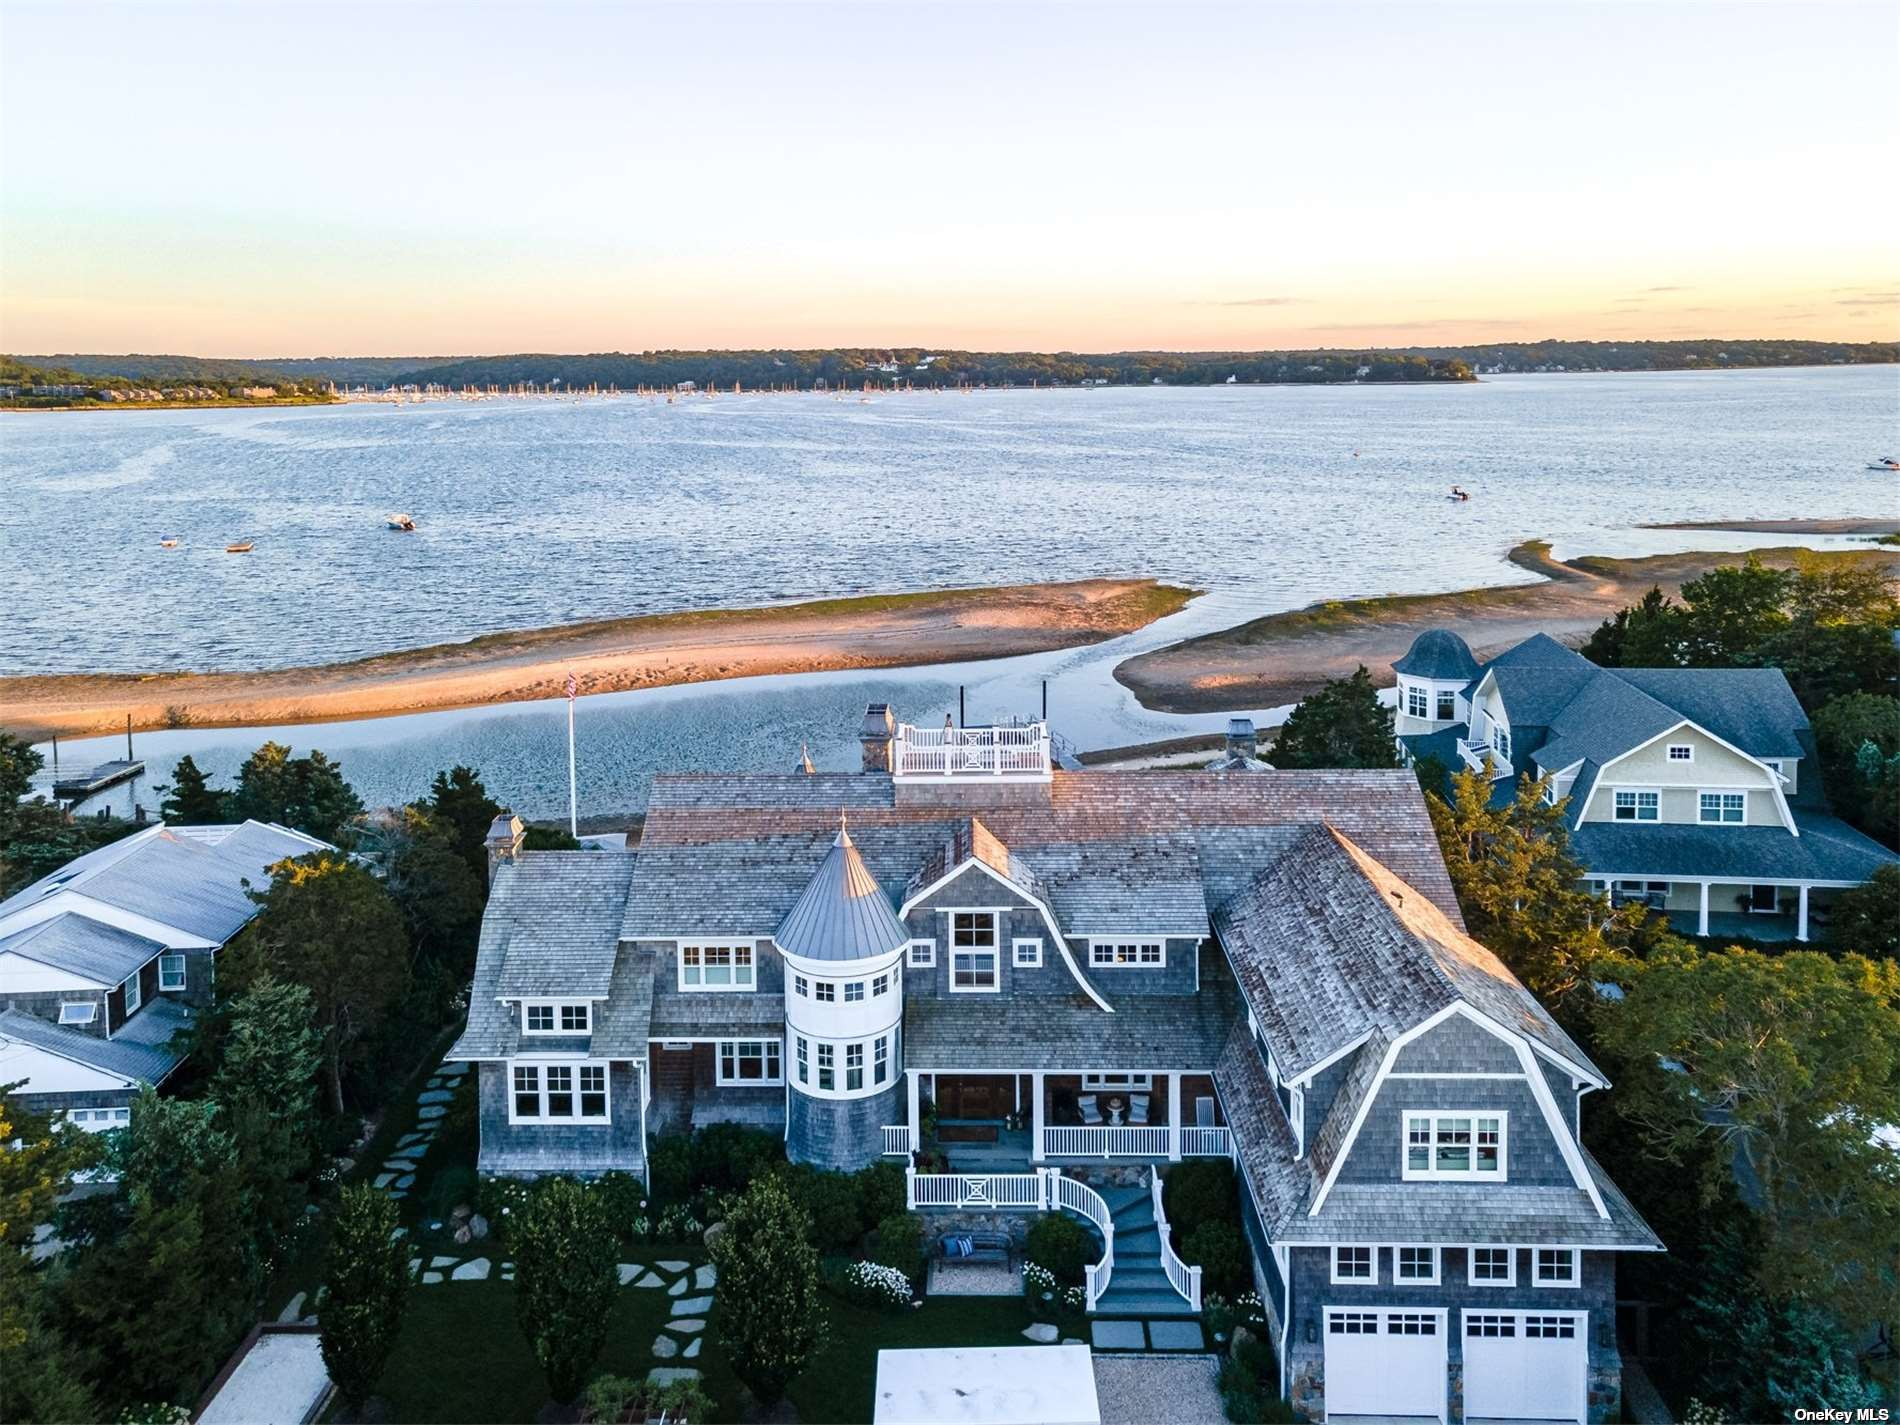 """Exquisite Hamptons-Style Gambrel Home newly built in 2017, situated on a double lot in Asharoken facing Northport Bay totaling 5.44 acres. Approx. 150' of Bay Frontage with Private Beach and Permitted Dock. Outdoor Full Kitchen utilizing Natural Gas. Main Home Featuring 4 Bedrooms, 4 Full Baths, 2 Half Baths, Home Gym, Two (2) 110 Bottle Wine Cooled Storage, Formal Living, Billiards Room, Home Office Study, as well as a Detached 2 Car Garage with Guest Quarters and Full Bath Above. Enjoy a Cigar or some relaxation in the Gentleman's Lounge located in the finished attic with a roof hatch leading to a roof deck with sweeping views spanning Long Island Sound, Northport Bay, and Asharoken. Plenty of storage in the unfinished crawlspace with 7.5' ceilings. Outdoor Living features a Full Kitchen w/Automatic Retracting Covered Pergola & Pizza Oven, Nat. Gas Fire Pit, Grass Tennis Court. Exclusions include """"Murray"""" Outdoor Statue leading to Dock and Murano Lighting Pendants in Master Bedroom."""